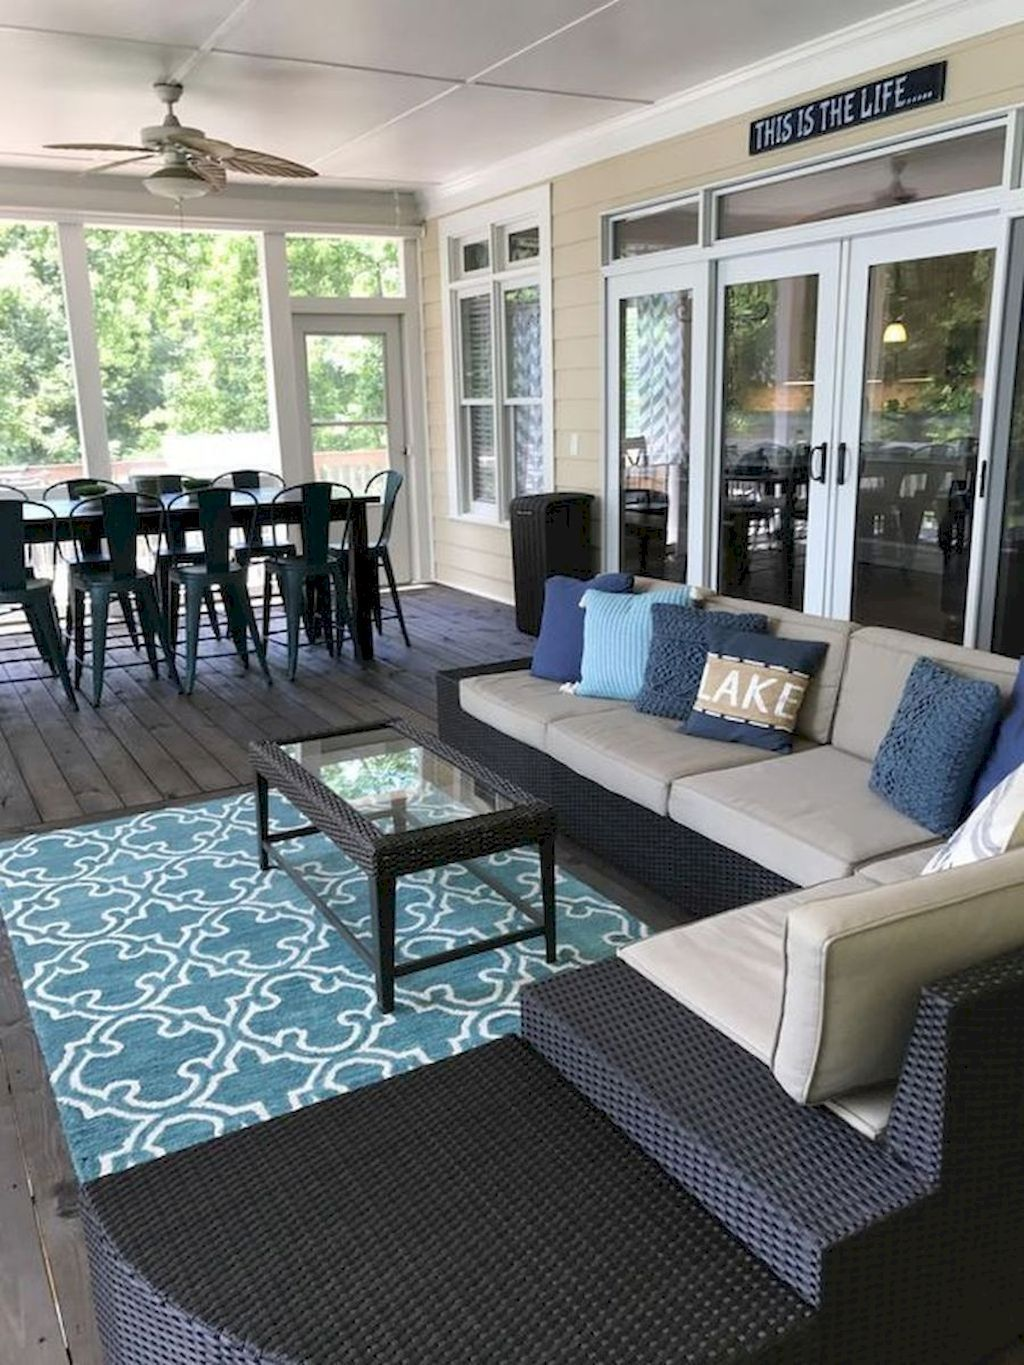 The 8 Simplest Back Porch Ideas To Inspire You Patio Decor House With Porch Porch Design